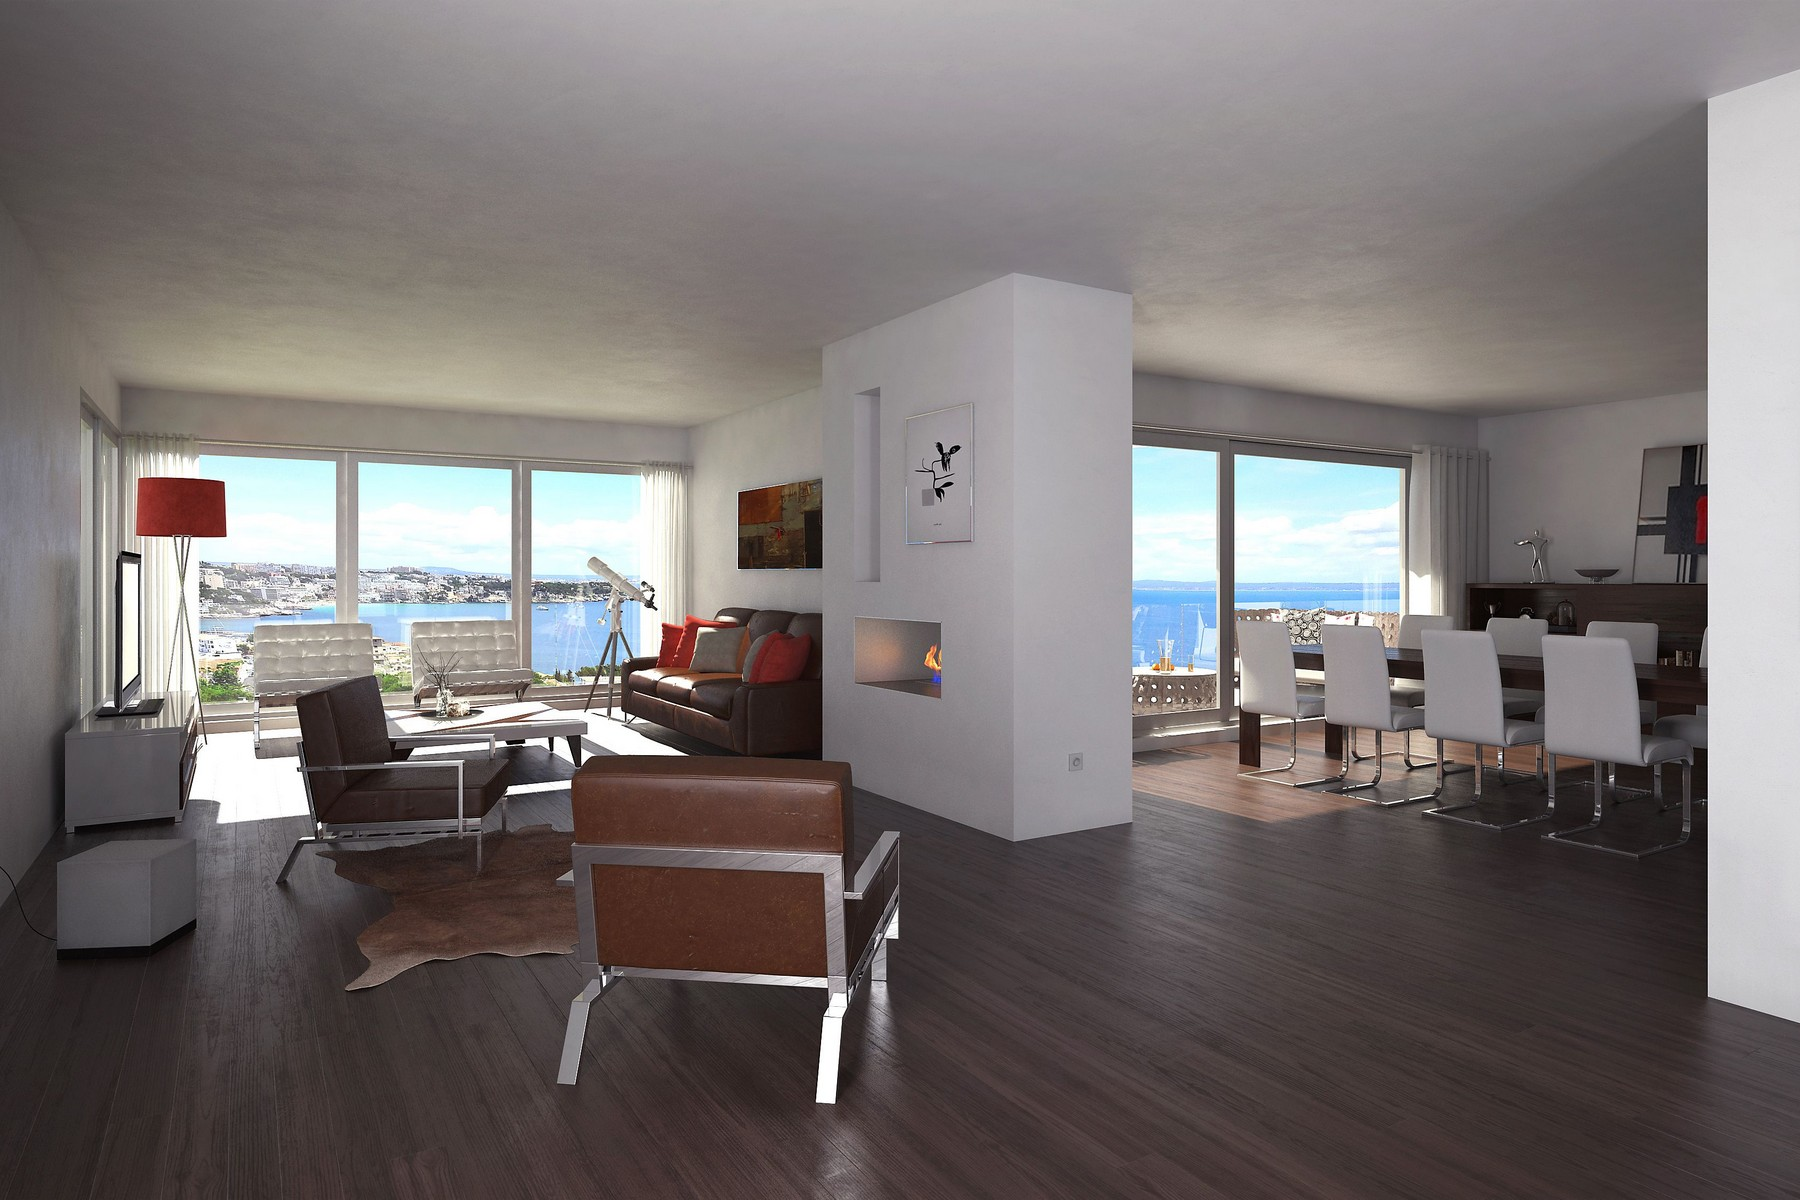 Apartamento para Venda às 7122 Luxury apartment with sea views in Cas Catalá Nou Bendinat, Palma De Maiorca, 07181 Espanha